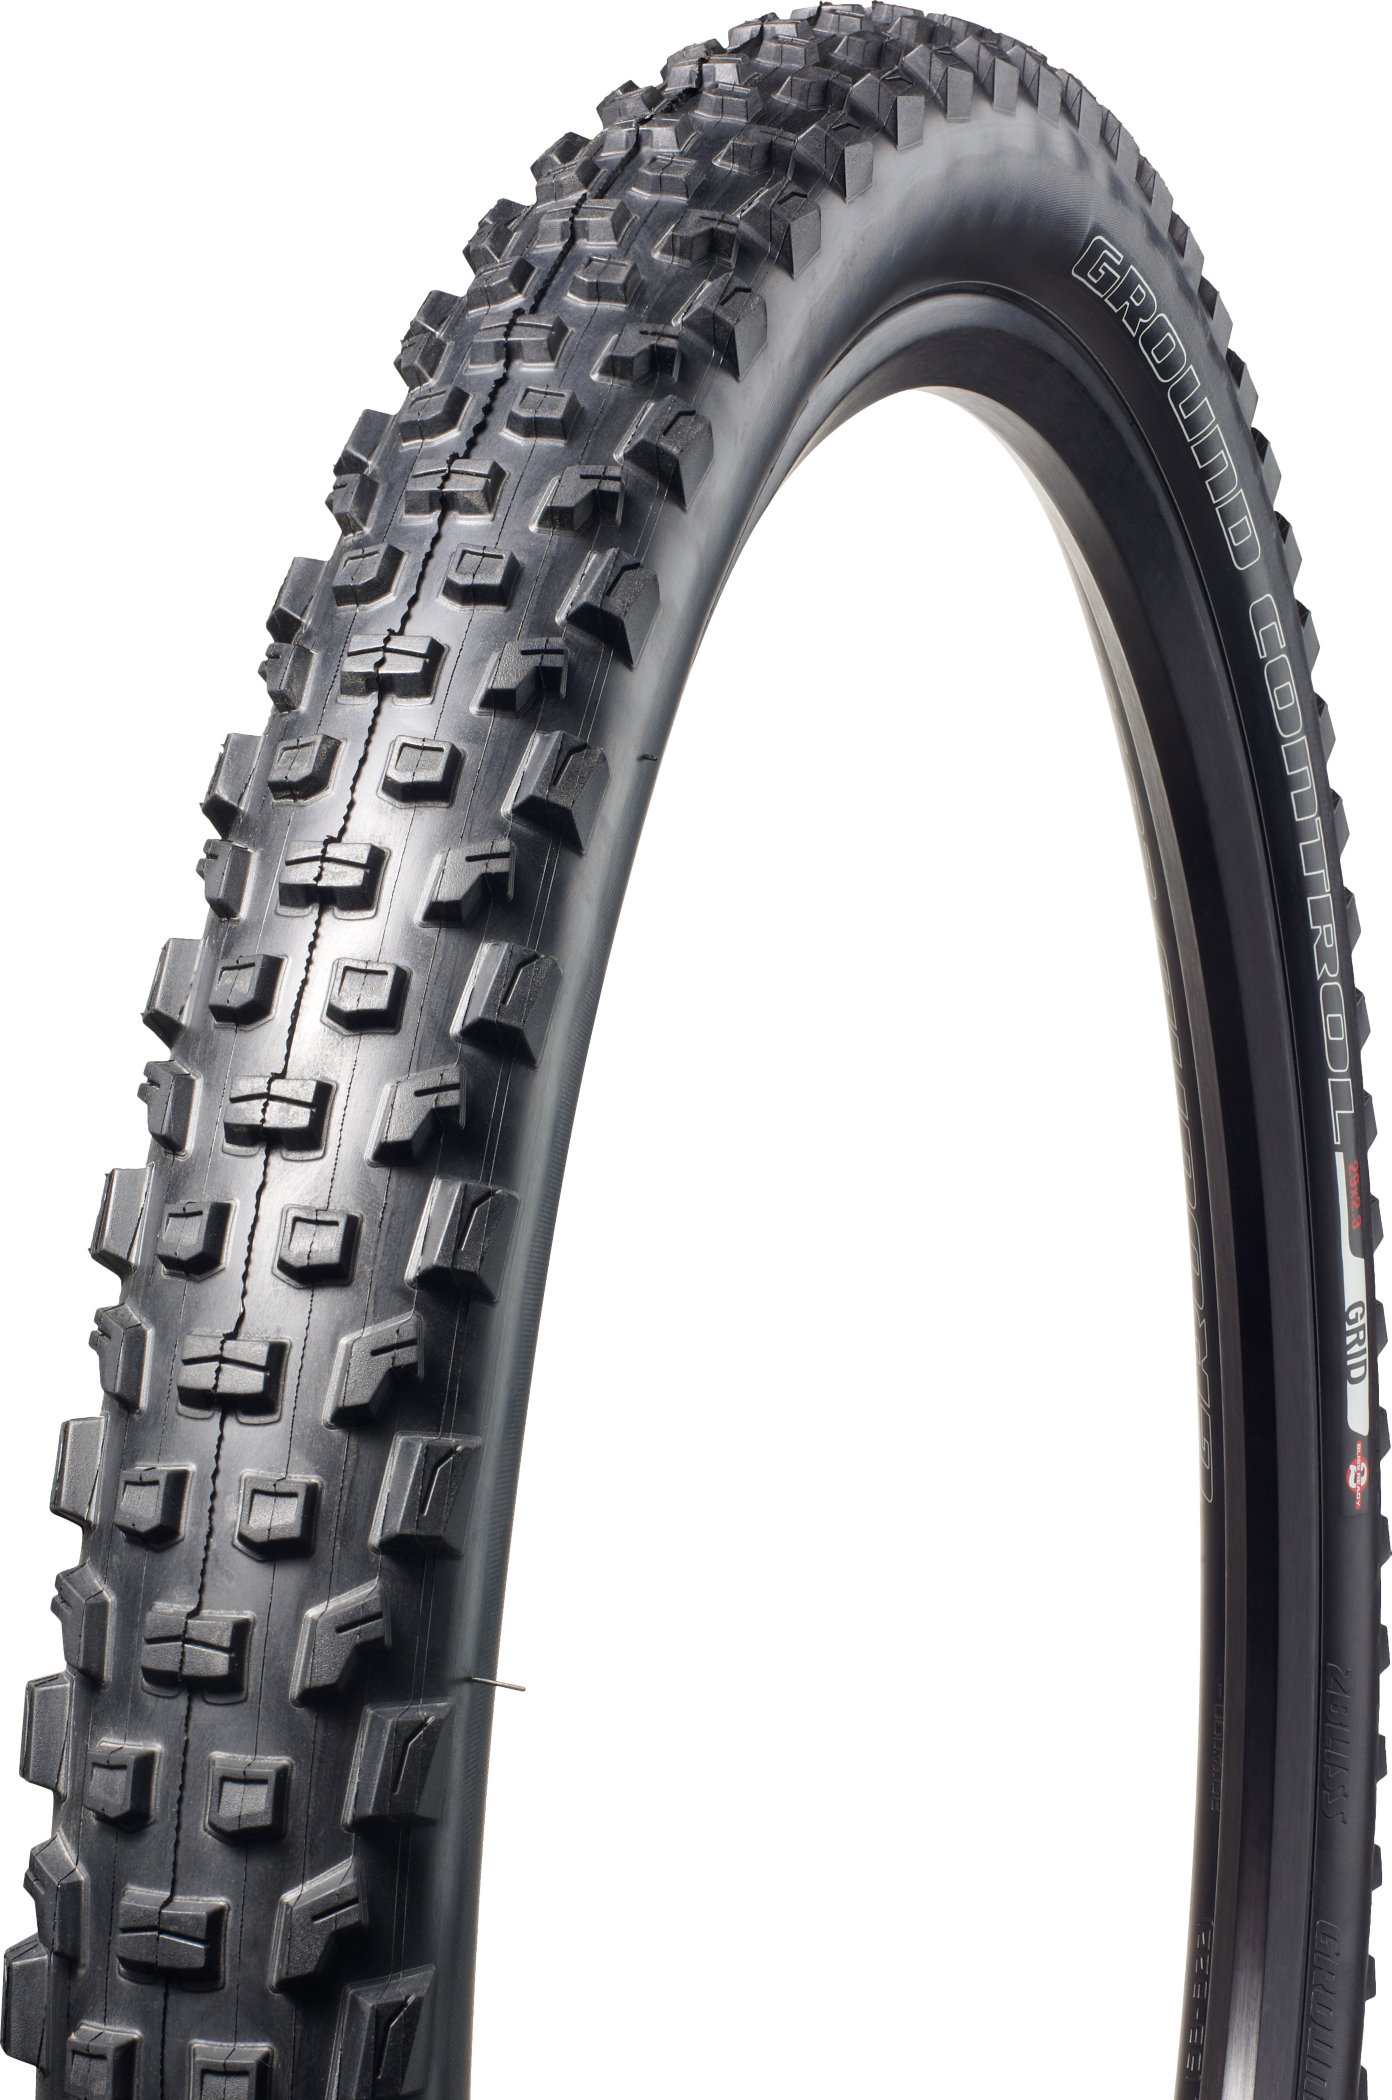 SPECIALIZED GROUND CONTROL SPORT TIRE 26X2.1 - SPECIALIZED GROUND CONTROL SPORT TIRE 26X2.1